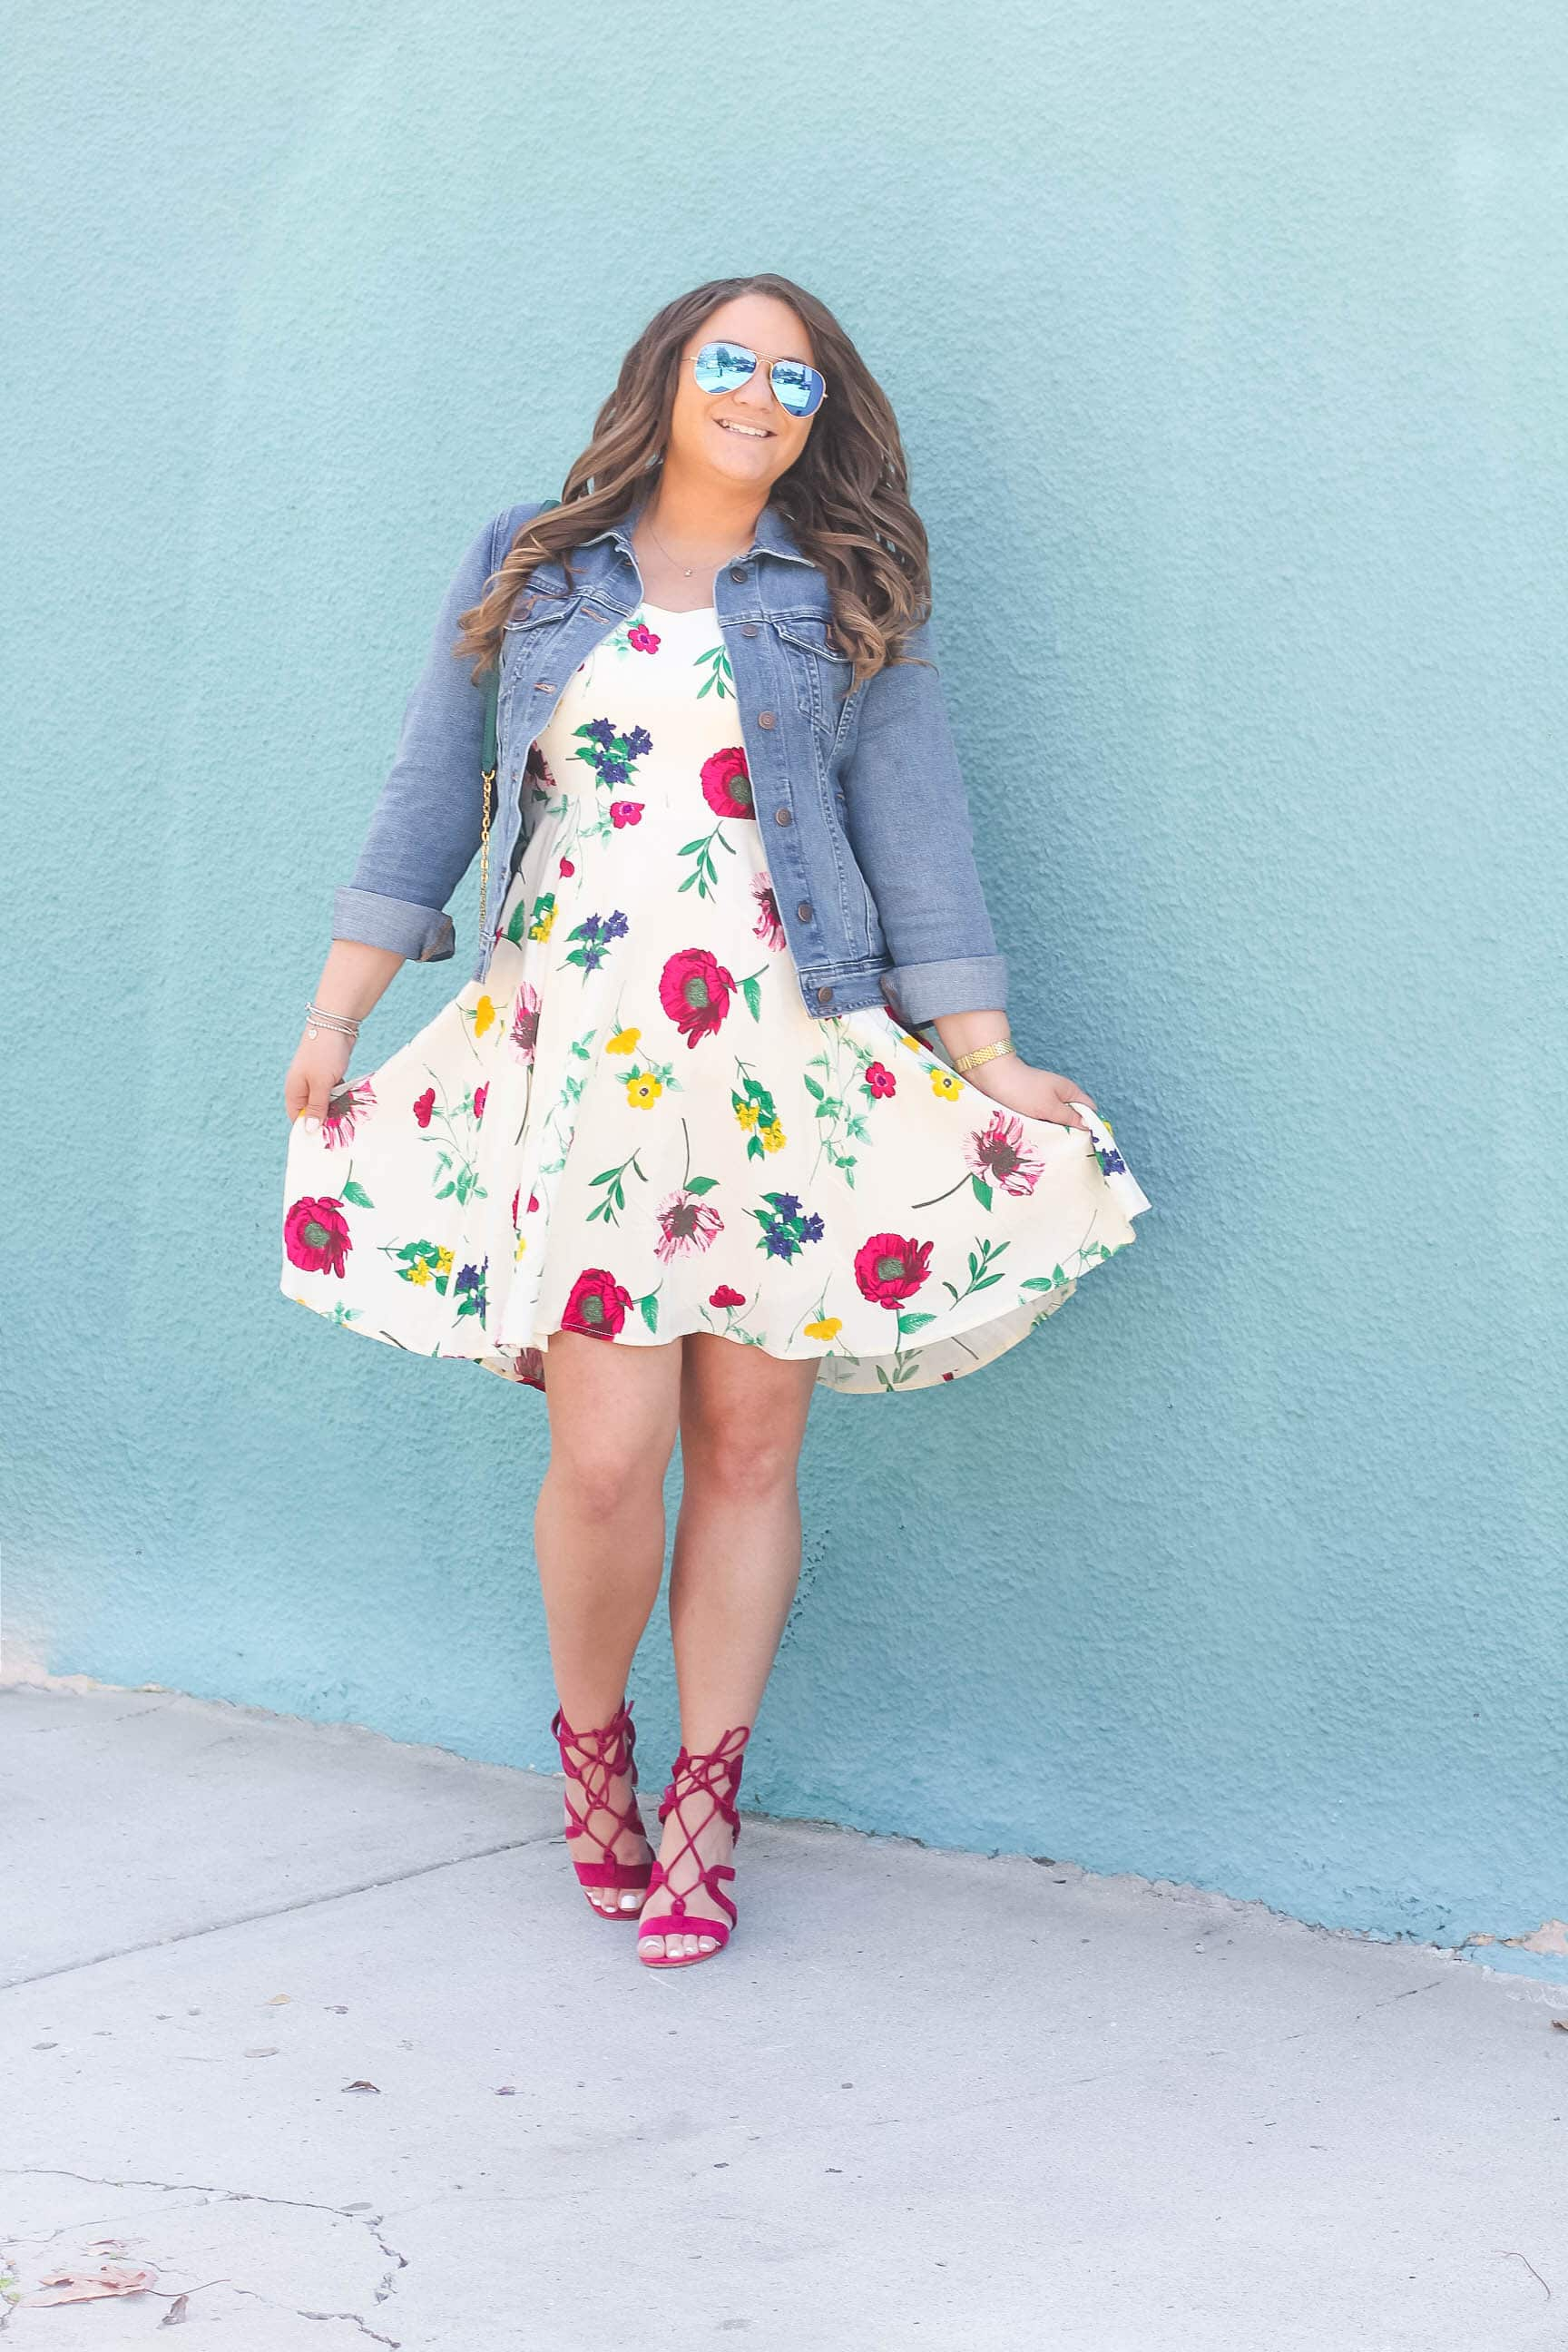 missyonmadison, missyonmadison instagram, melissa tierney, la blogger, style blogger, fashion blogger, fashion goals, outfit inspo, summer style, summer trends, floral dress, floral fit and flare dress, old navy, old navy cami dress, old navy floral dress, old navy denim jacket, denim jacket, raybans, rayban aviators, gianvito rossi, gianvito rossi lace up sandals, lace up sandals, vera bradley, vera bradley cross body bag, vera bradley emerald cross bodybag, curled hair, hair extensions, beauty blogger, outfits under $50,